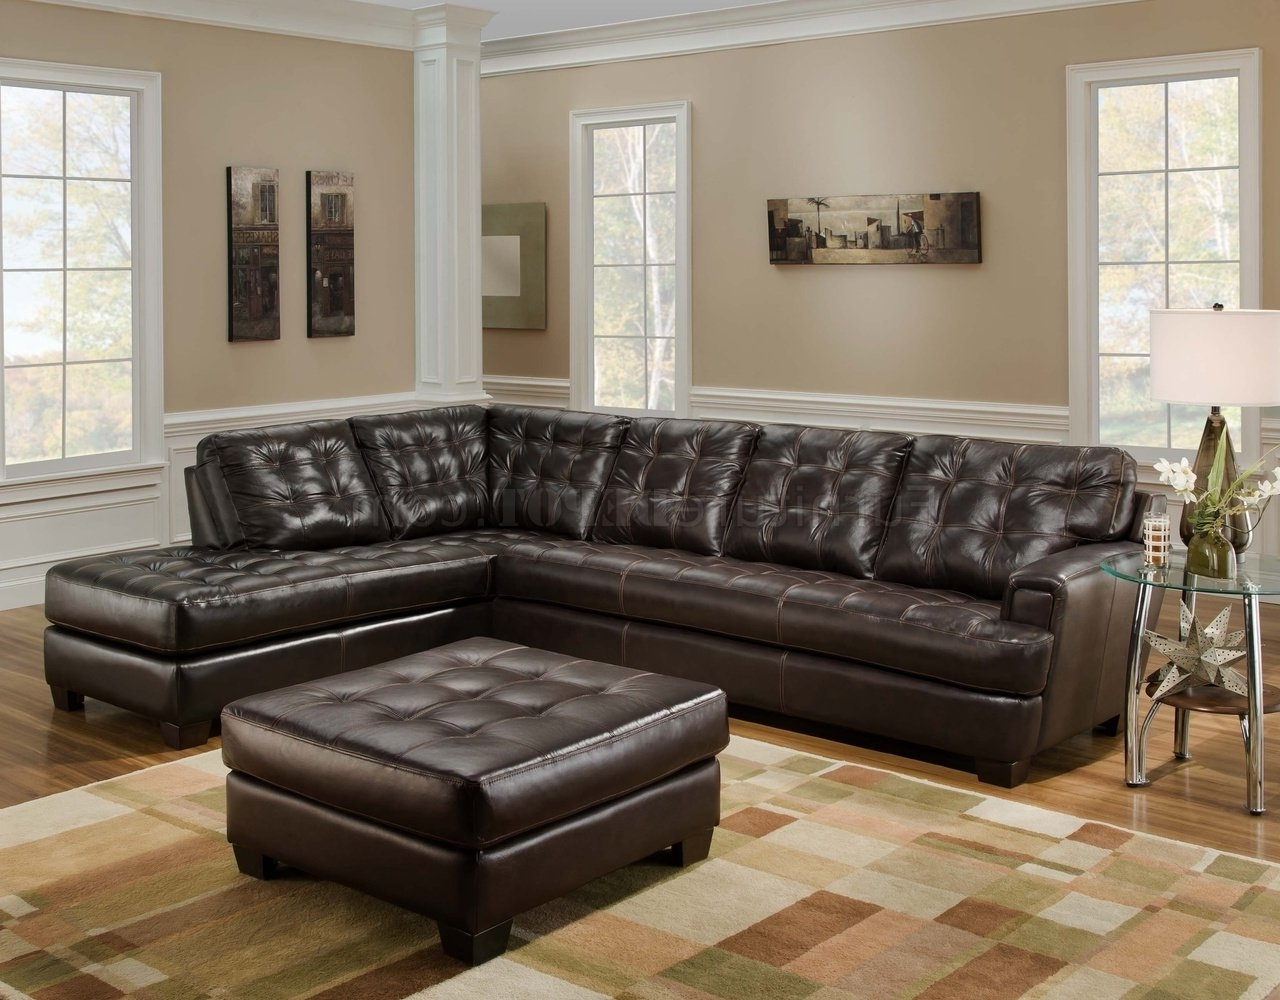 Leather Sectionals With Ottoman Throughout Most Recent Chicory Brown Tufted Top Grain Leather Modern Sectional Sofa (View 14 of 20)